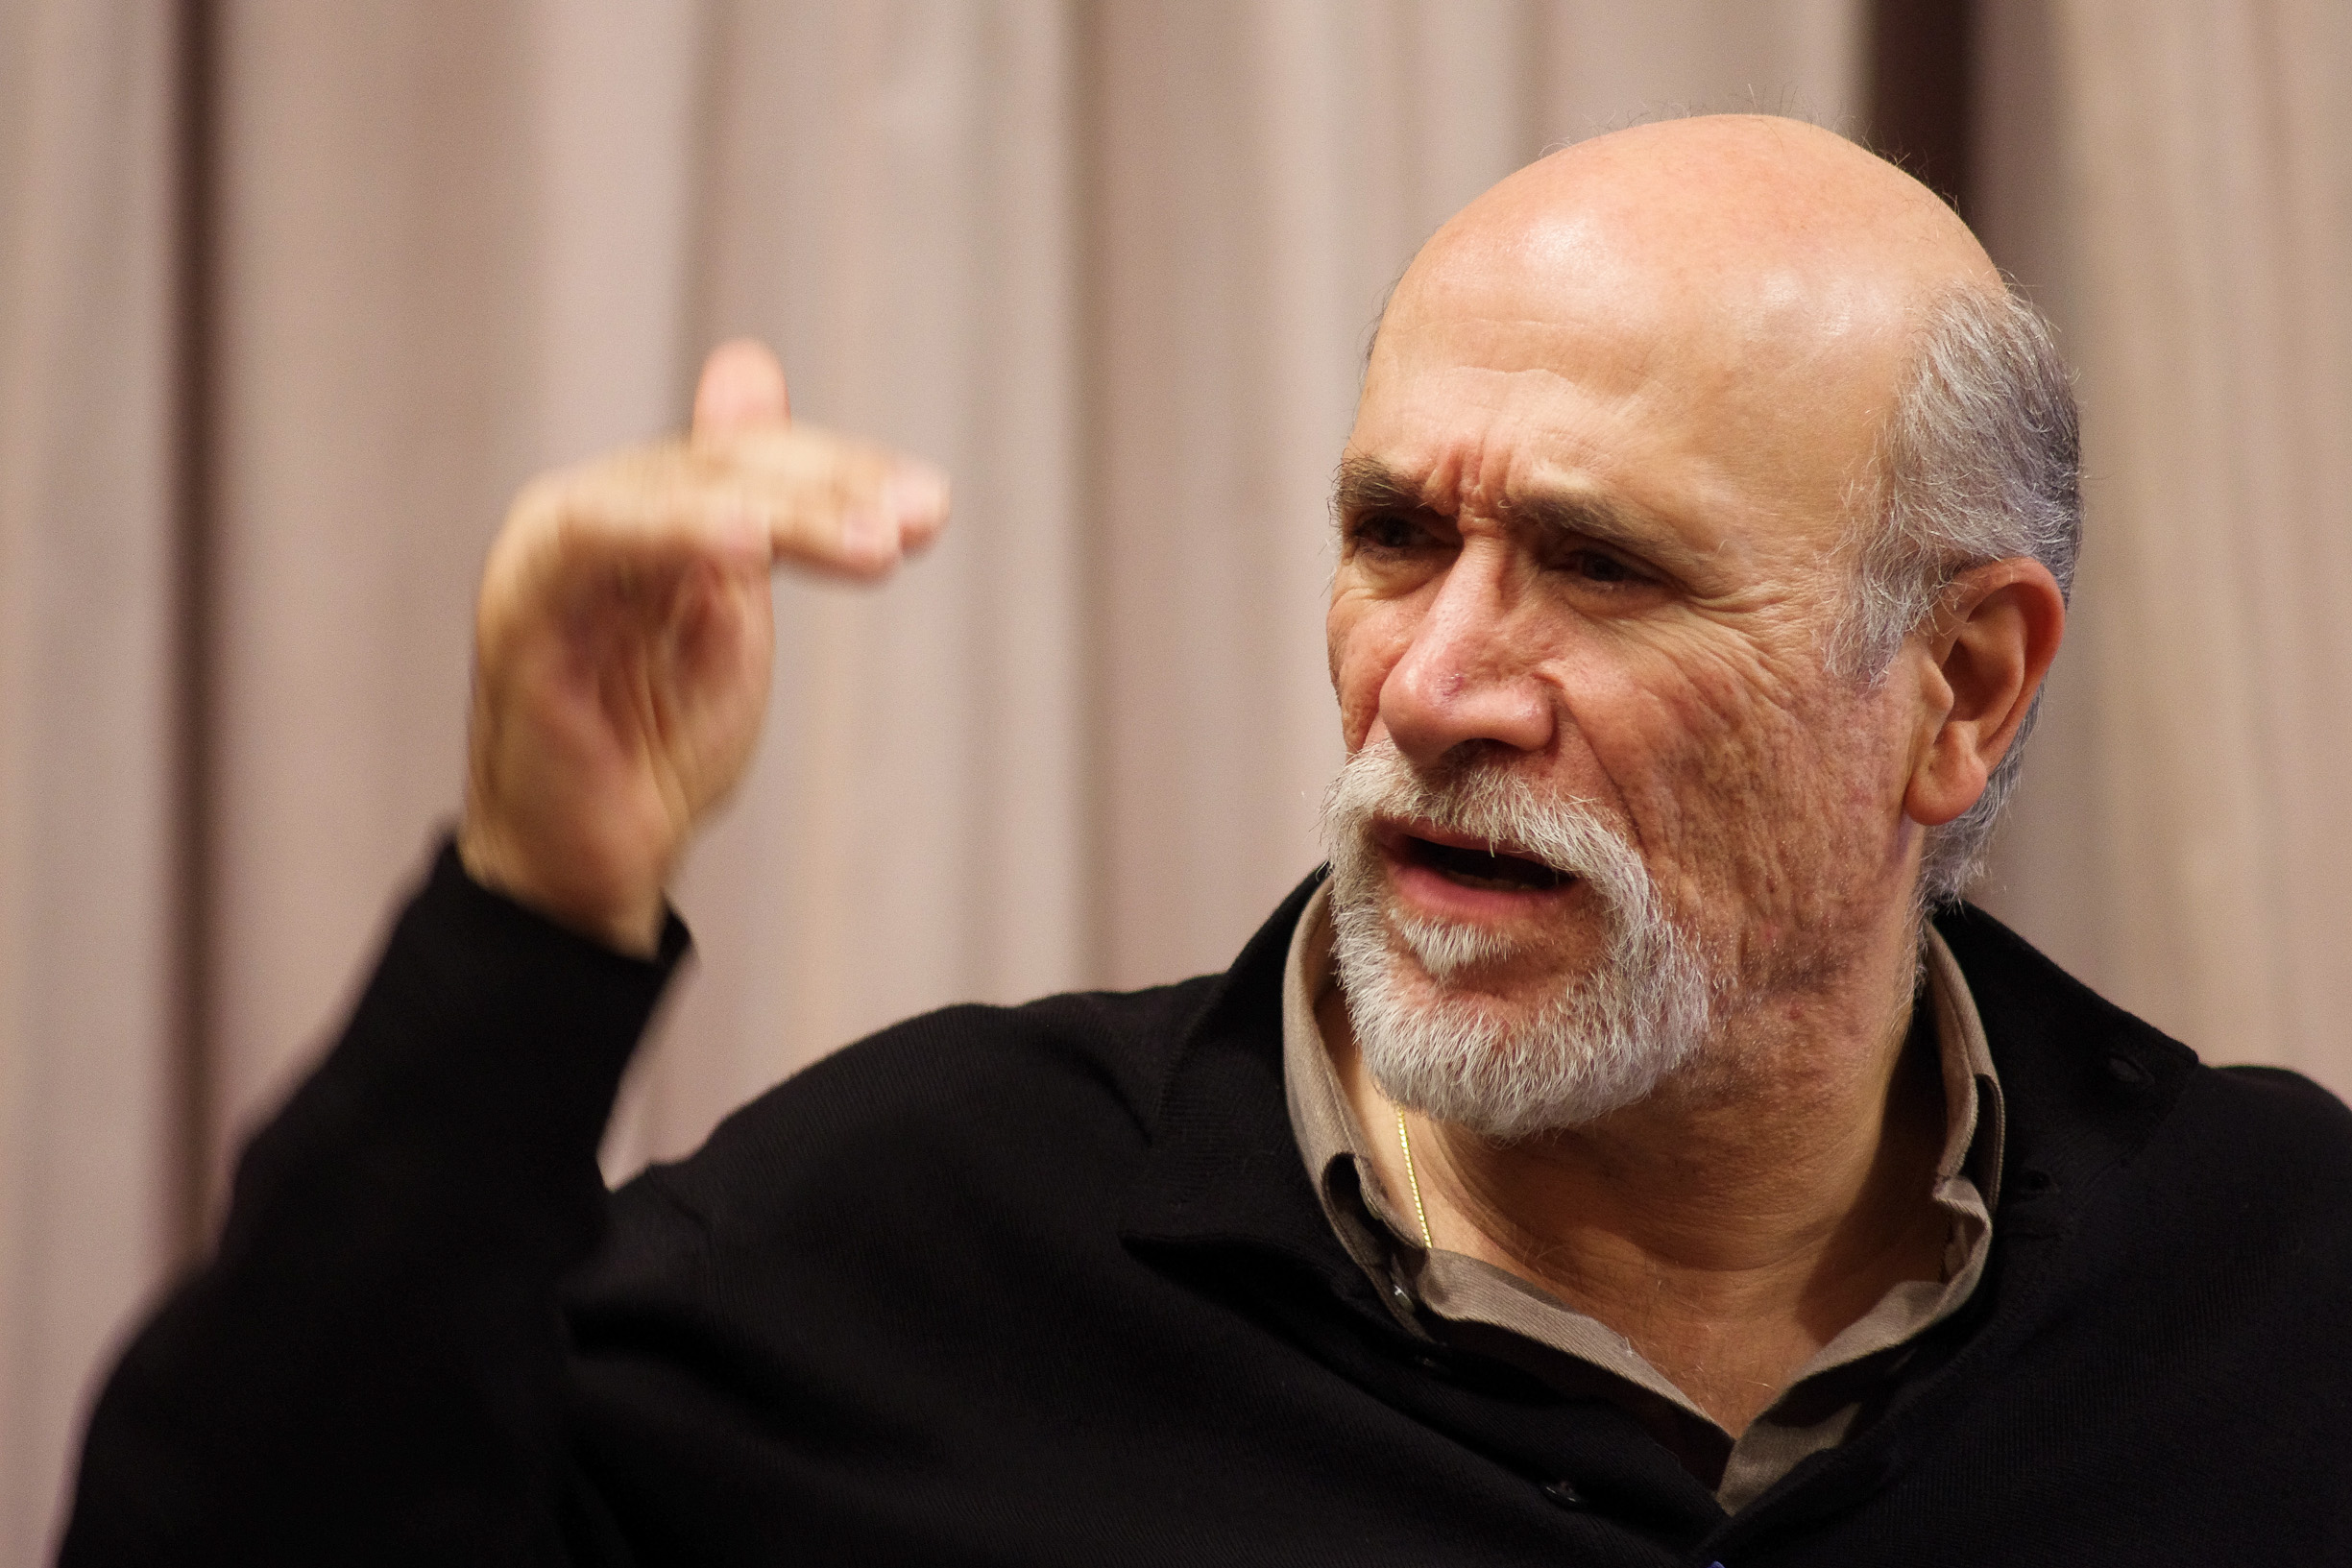 tony amendola f murray abraham